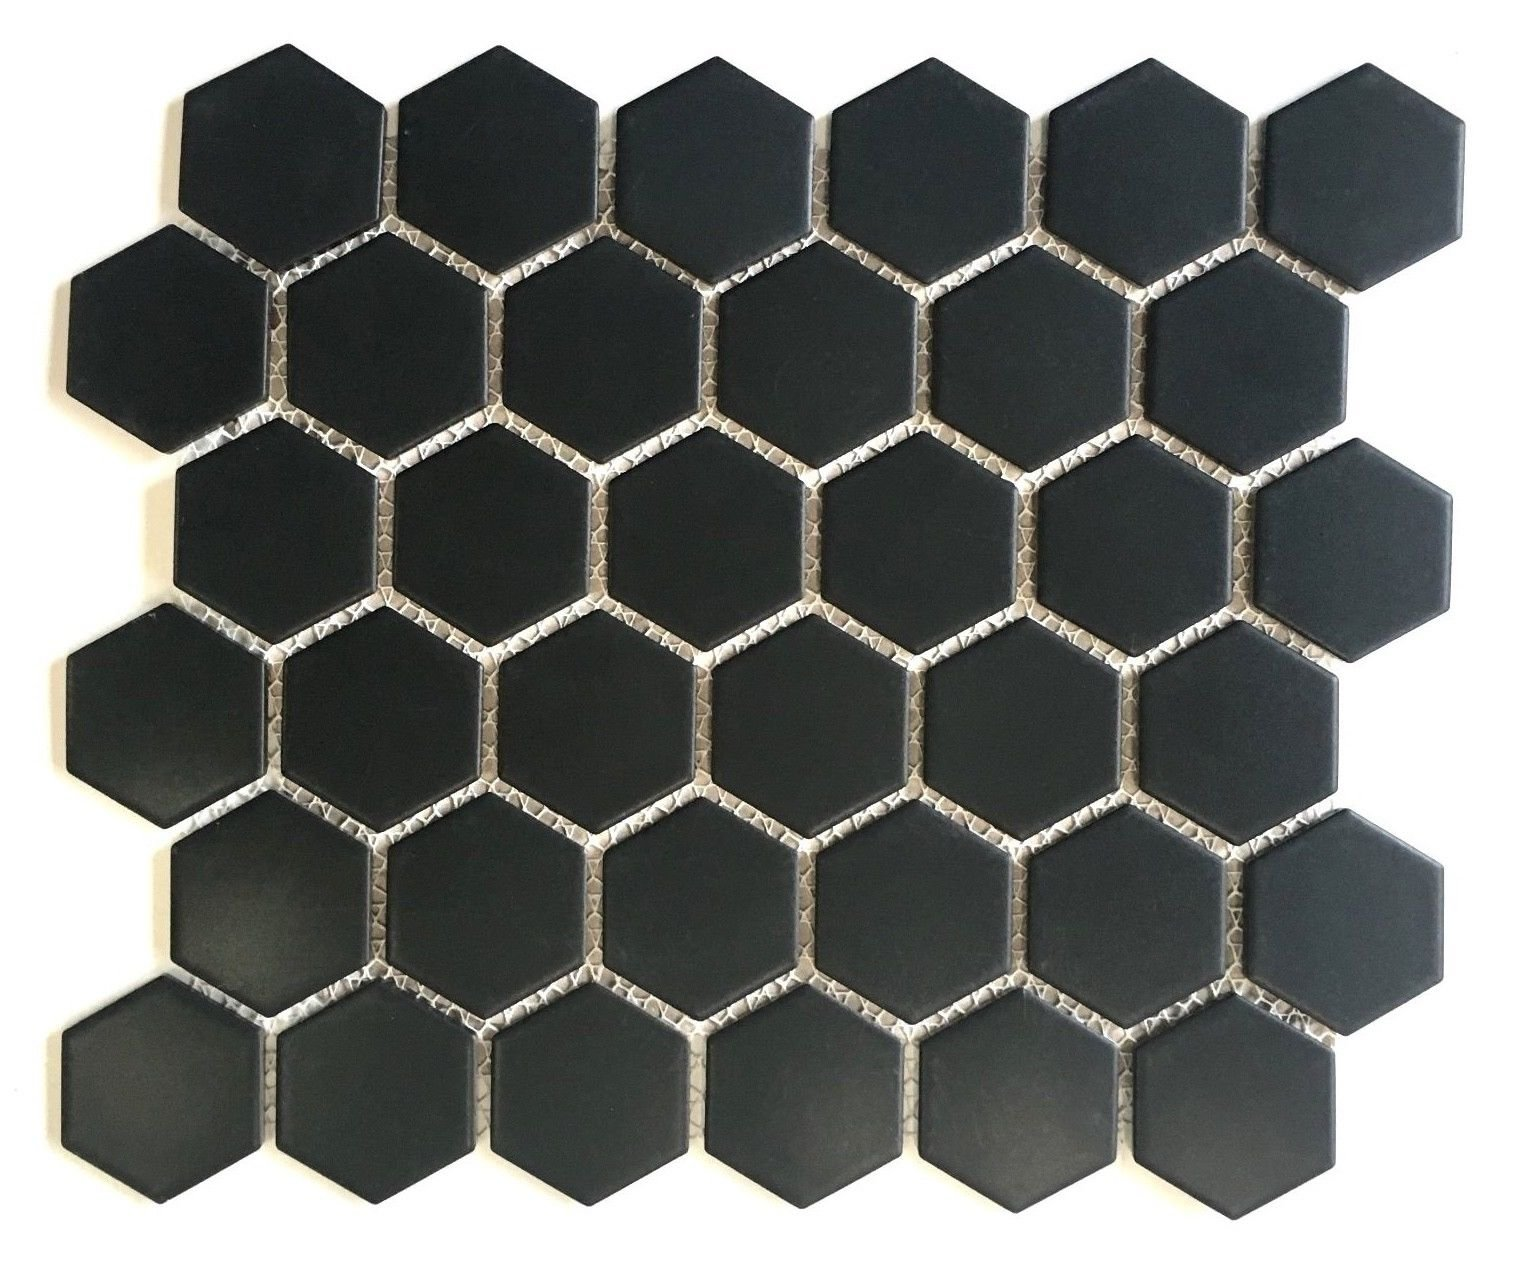 Black Hexagon 2'' Matte Porcelain Mosaic Floor and Wall Backsplash Bath Kitchen 10 Pack Box